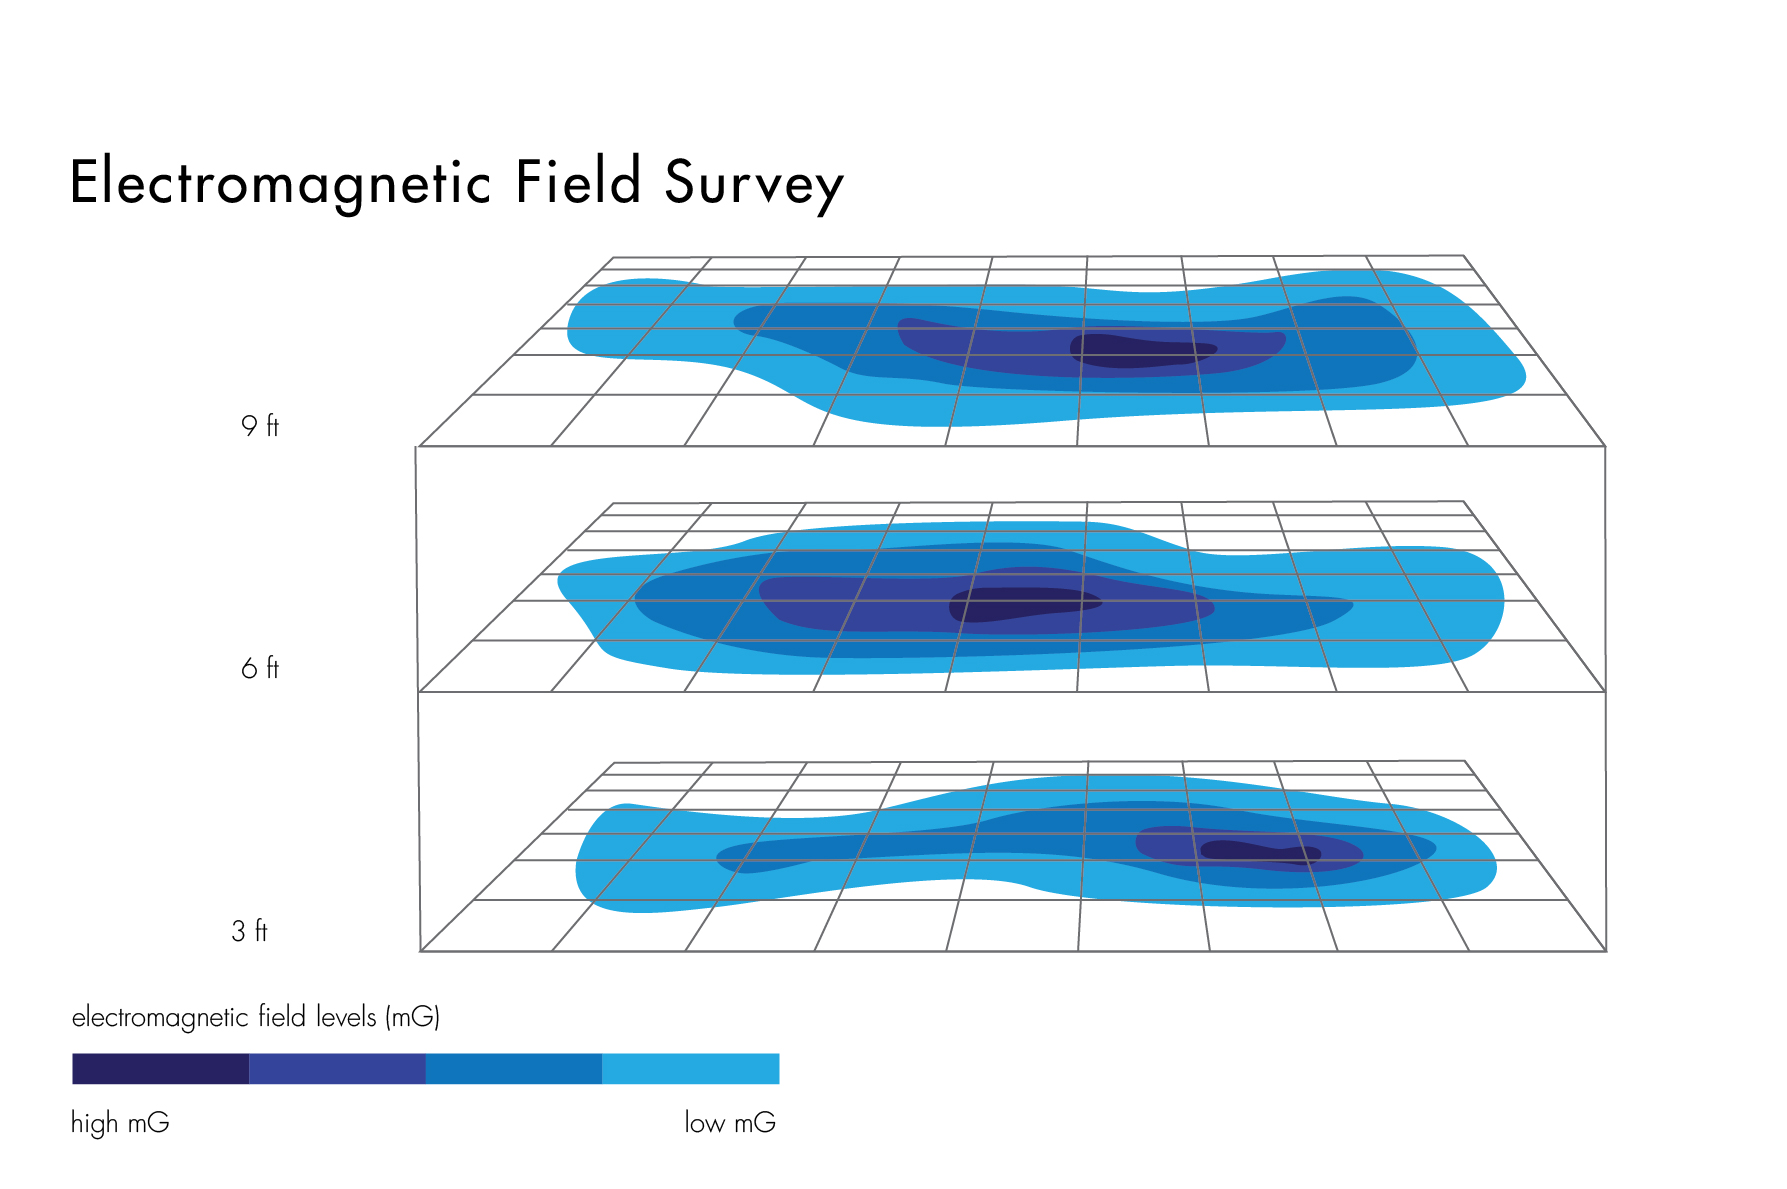 Site survey results can be graphically represented to accurately depict the field spatial distribution.